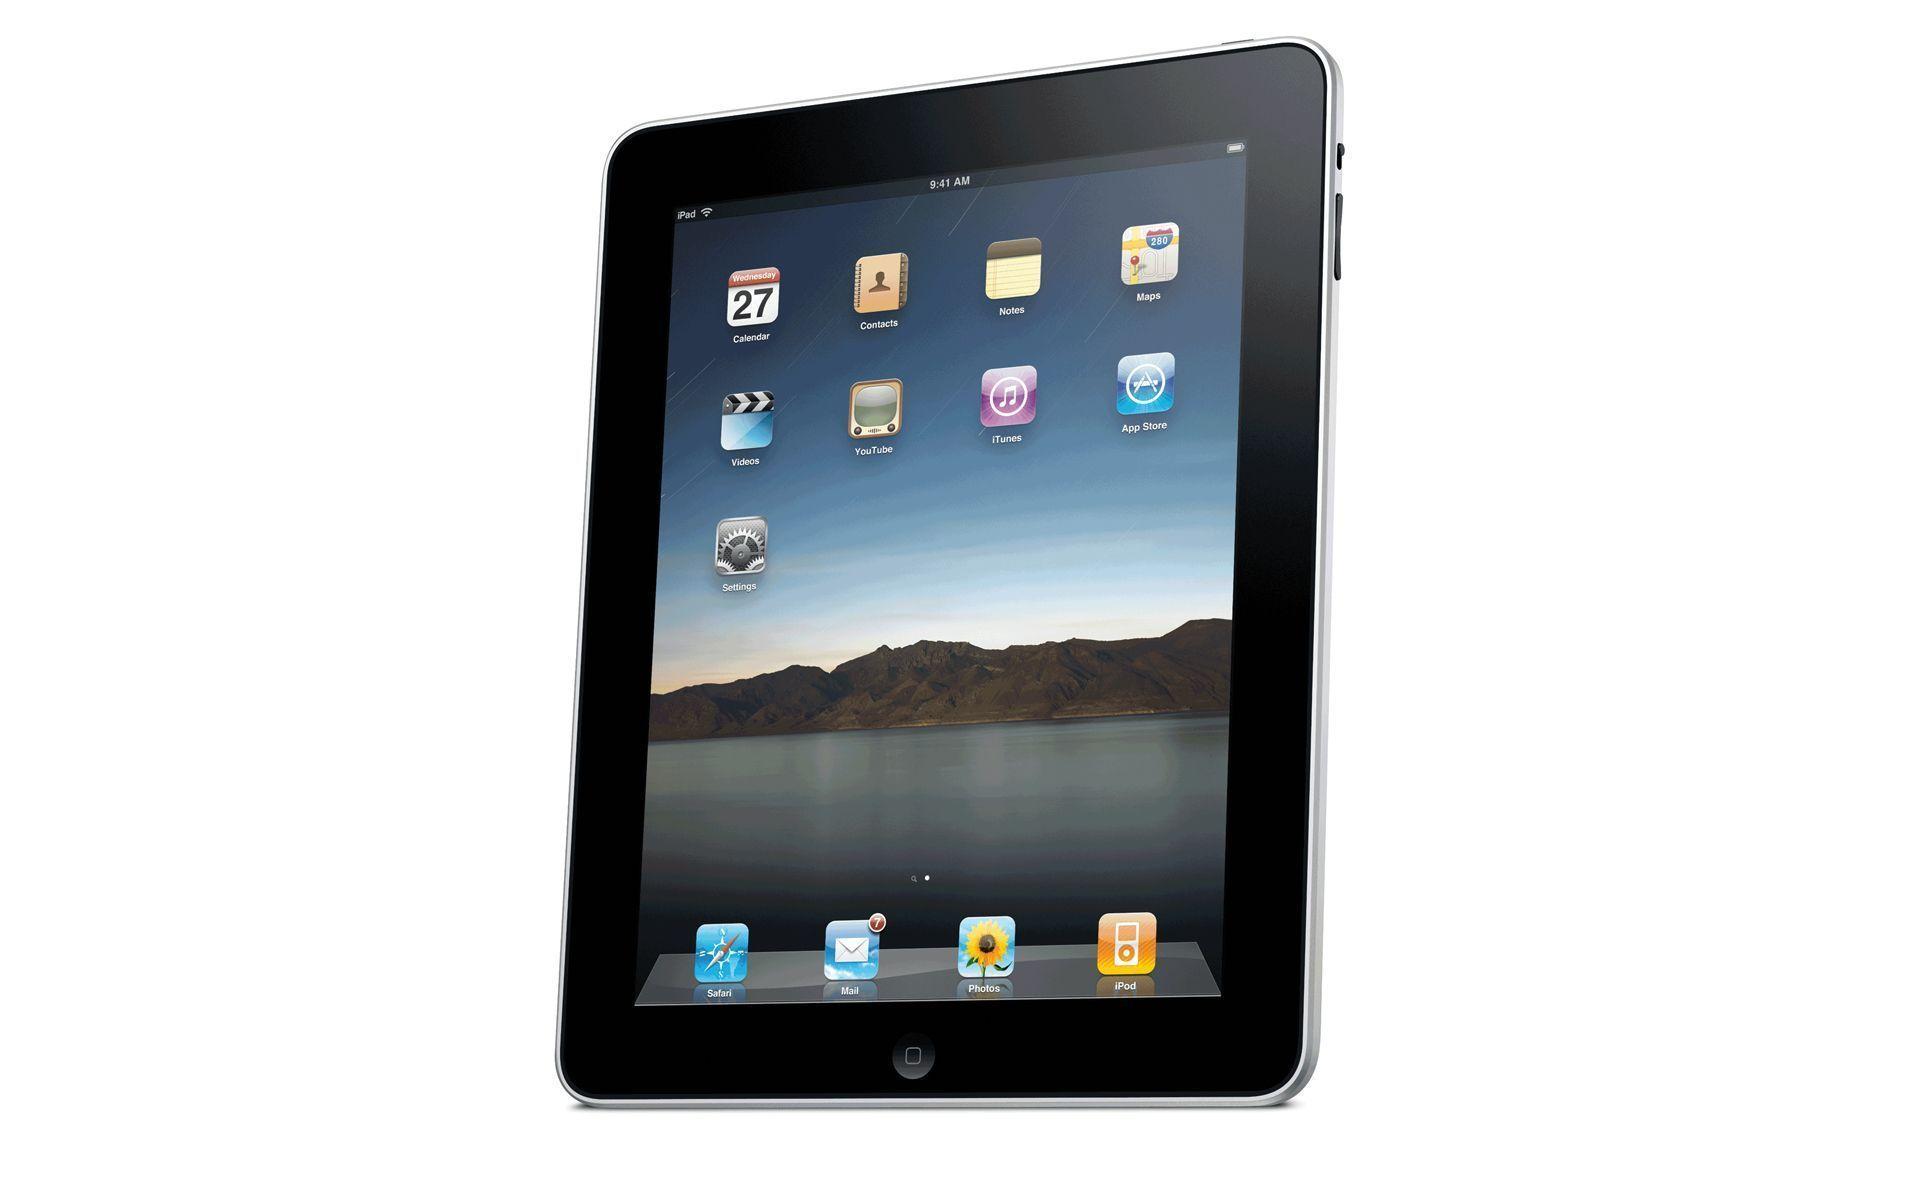 The iPad is a line of tablet computers designed, developed and